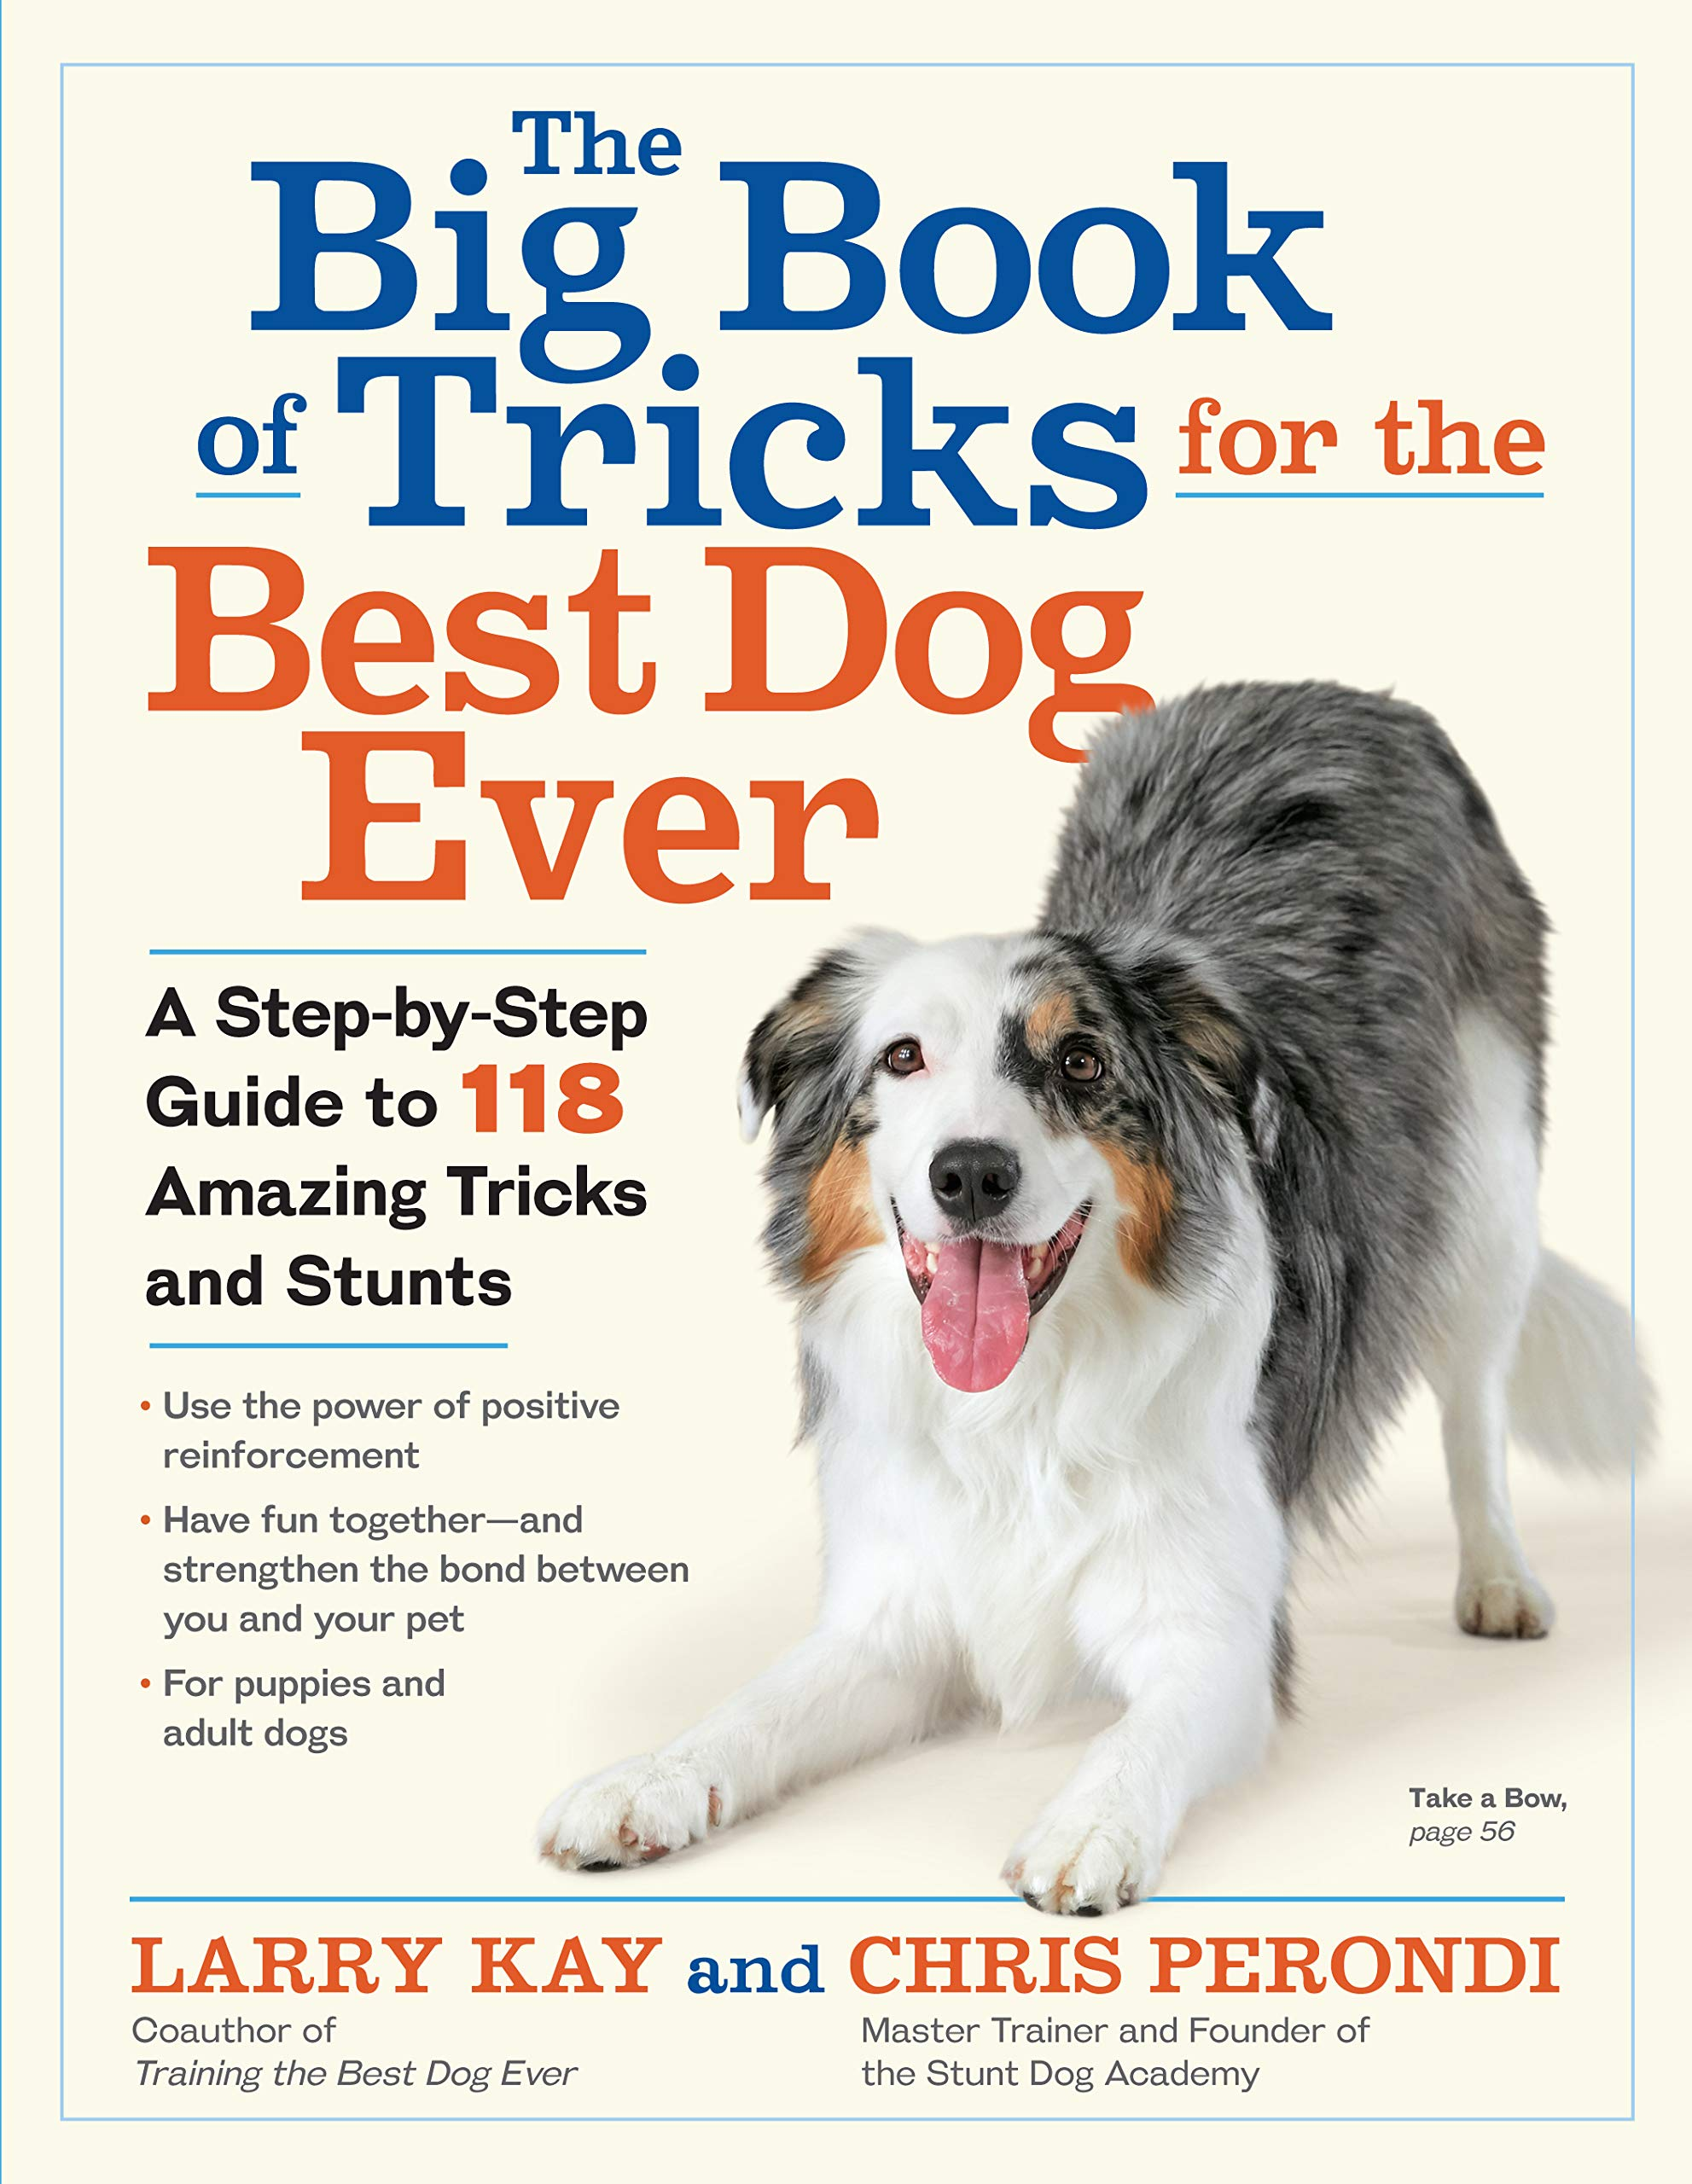 The Big Book of Tricks for the Best Dog Ever: A Step-by-Step Guide to 112 Amazing Tricks and Stunts 1